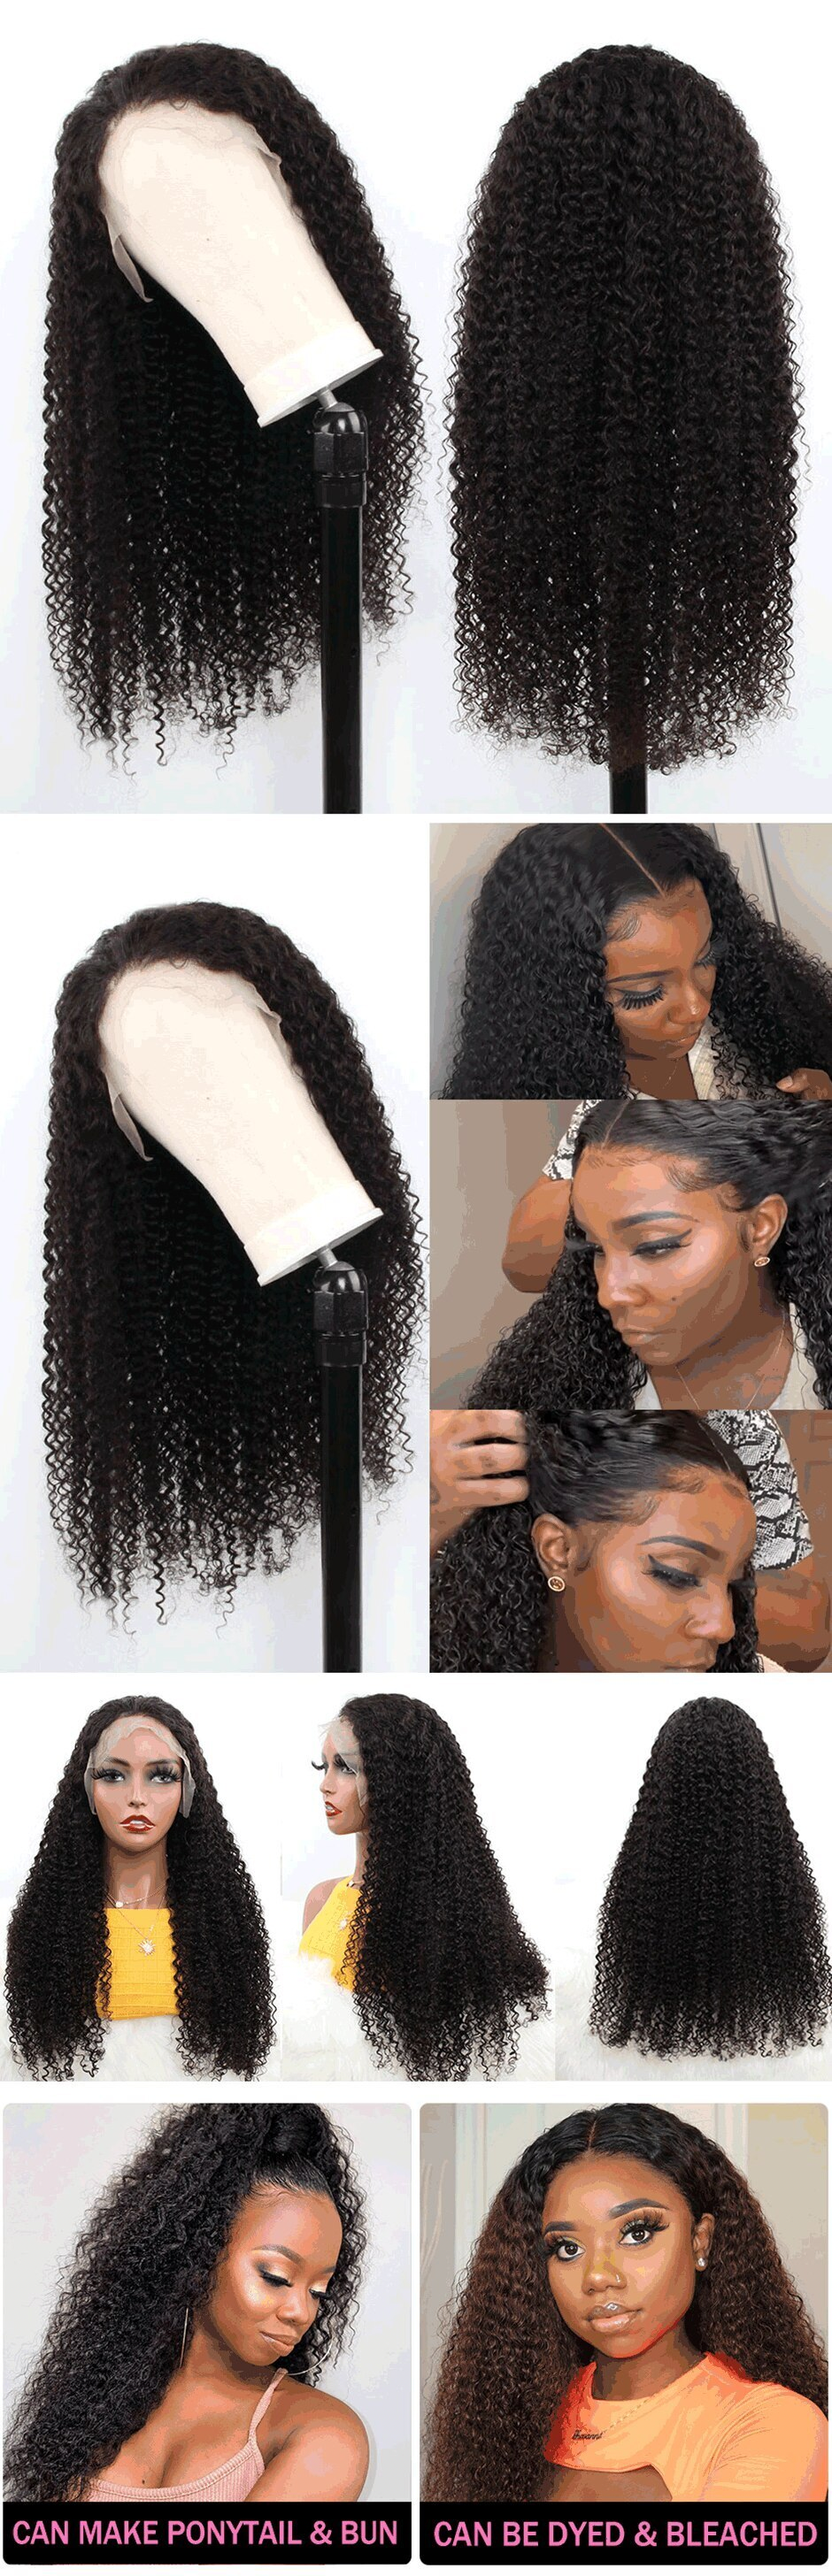 Mongolian Kinky Curly Wigs For Women Lace Frontal HAIR Curly Lace Closure Wig 180% Density Curly Lace Front Human Hair Wigs